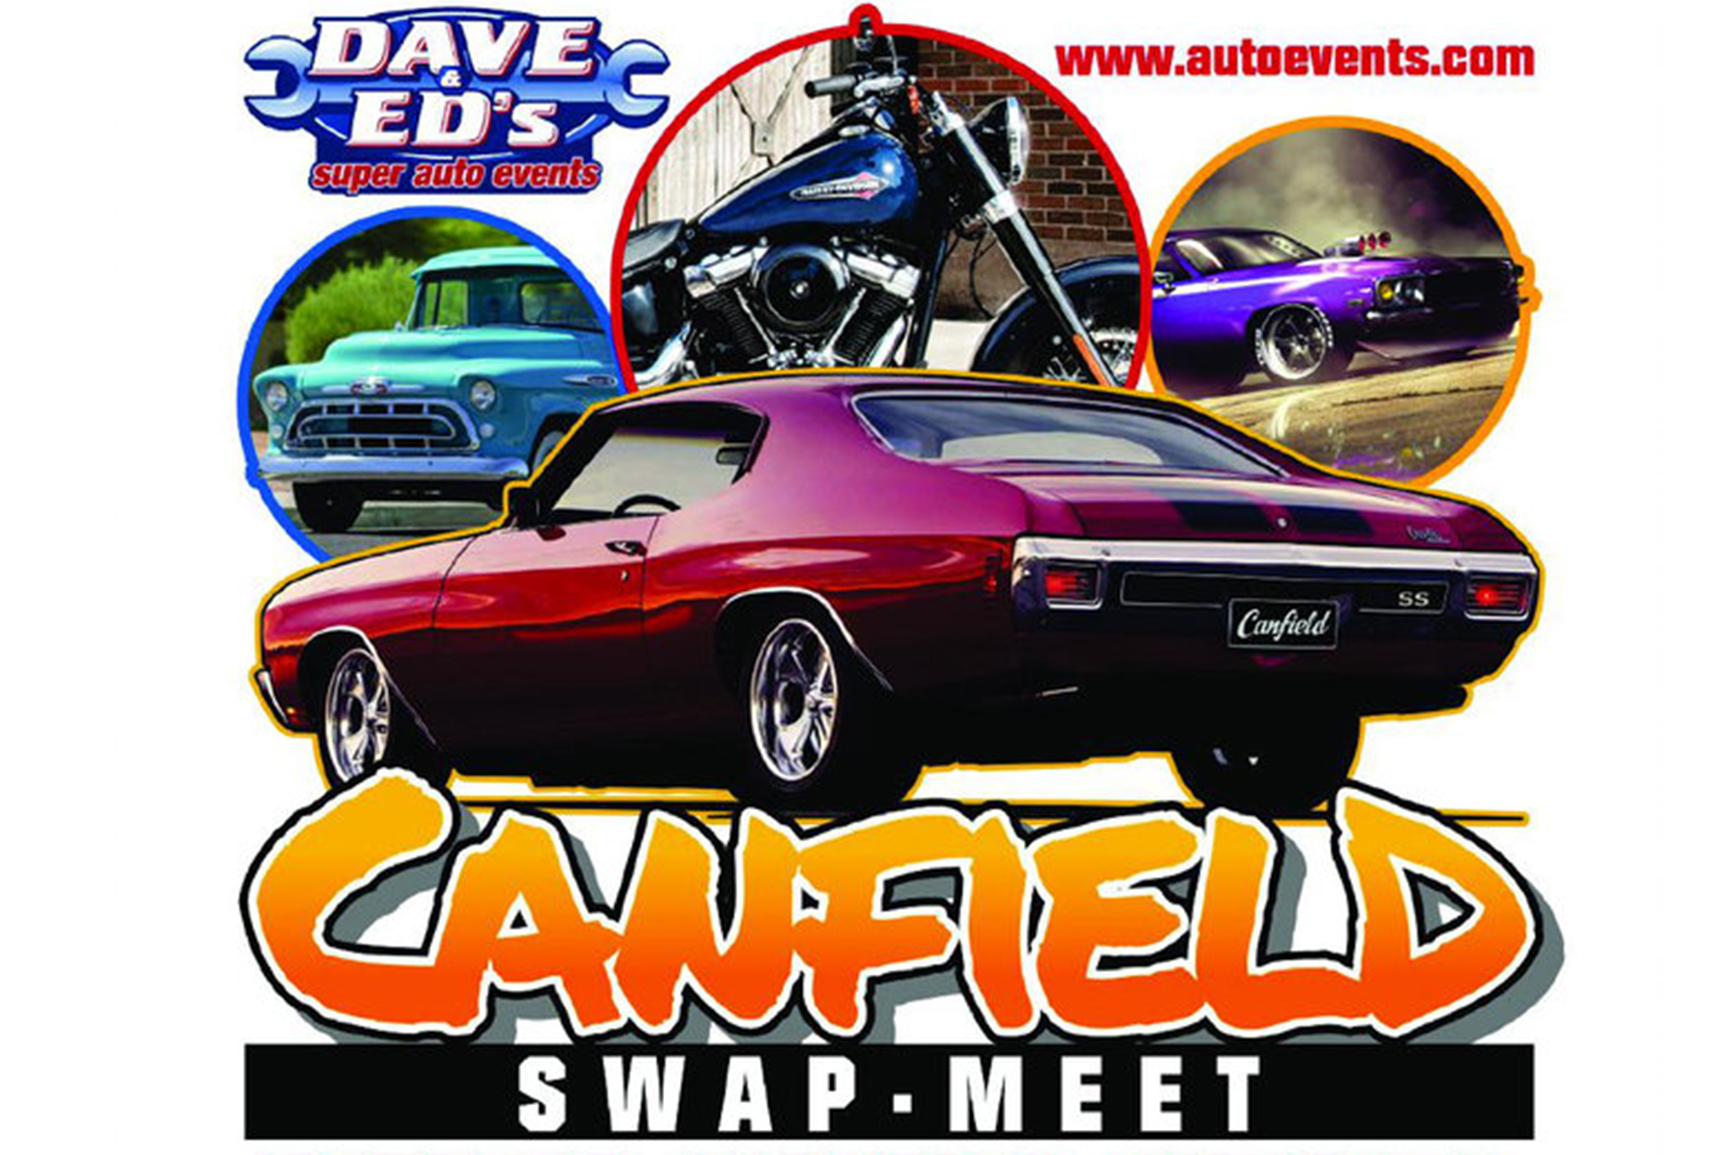 Canfield Swap Meet >> Dave Ed S Super Auto Events Youngstown Live